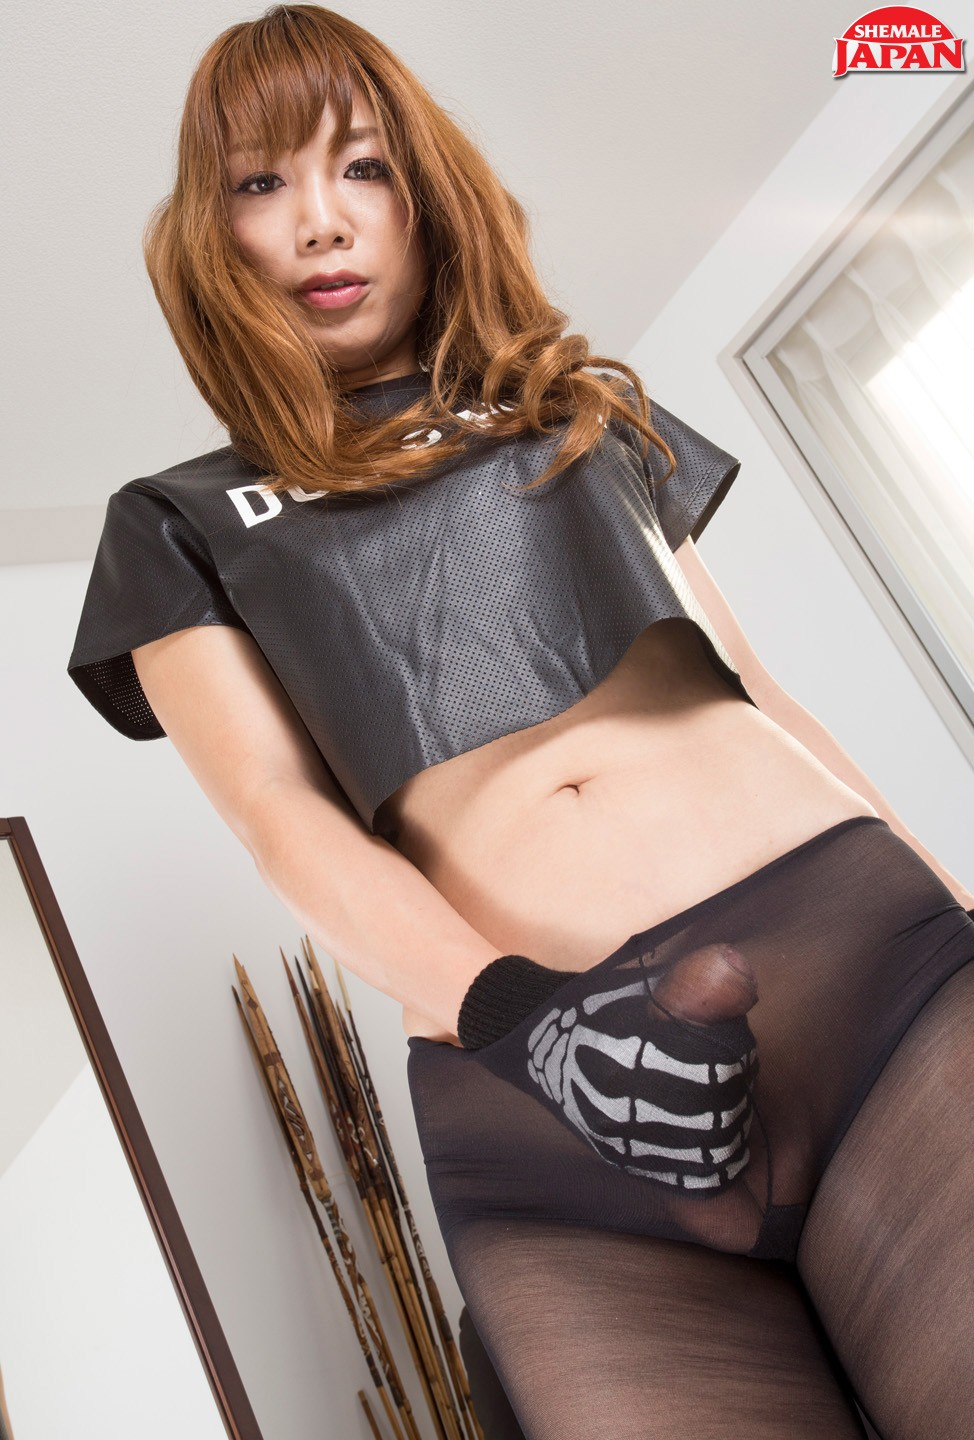 Miki shemale Shemale Japan welcomes back Tokyo hung angel Miki for another scene! Miki brings the heat in her second shoot rocking a pair of ridiculously sexy leather ...